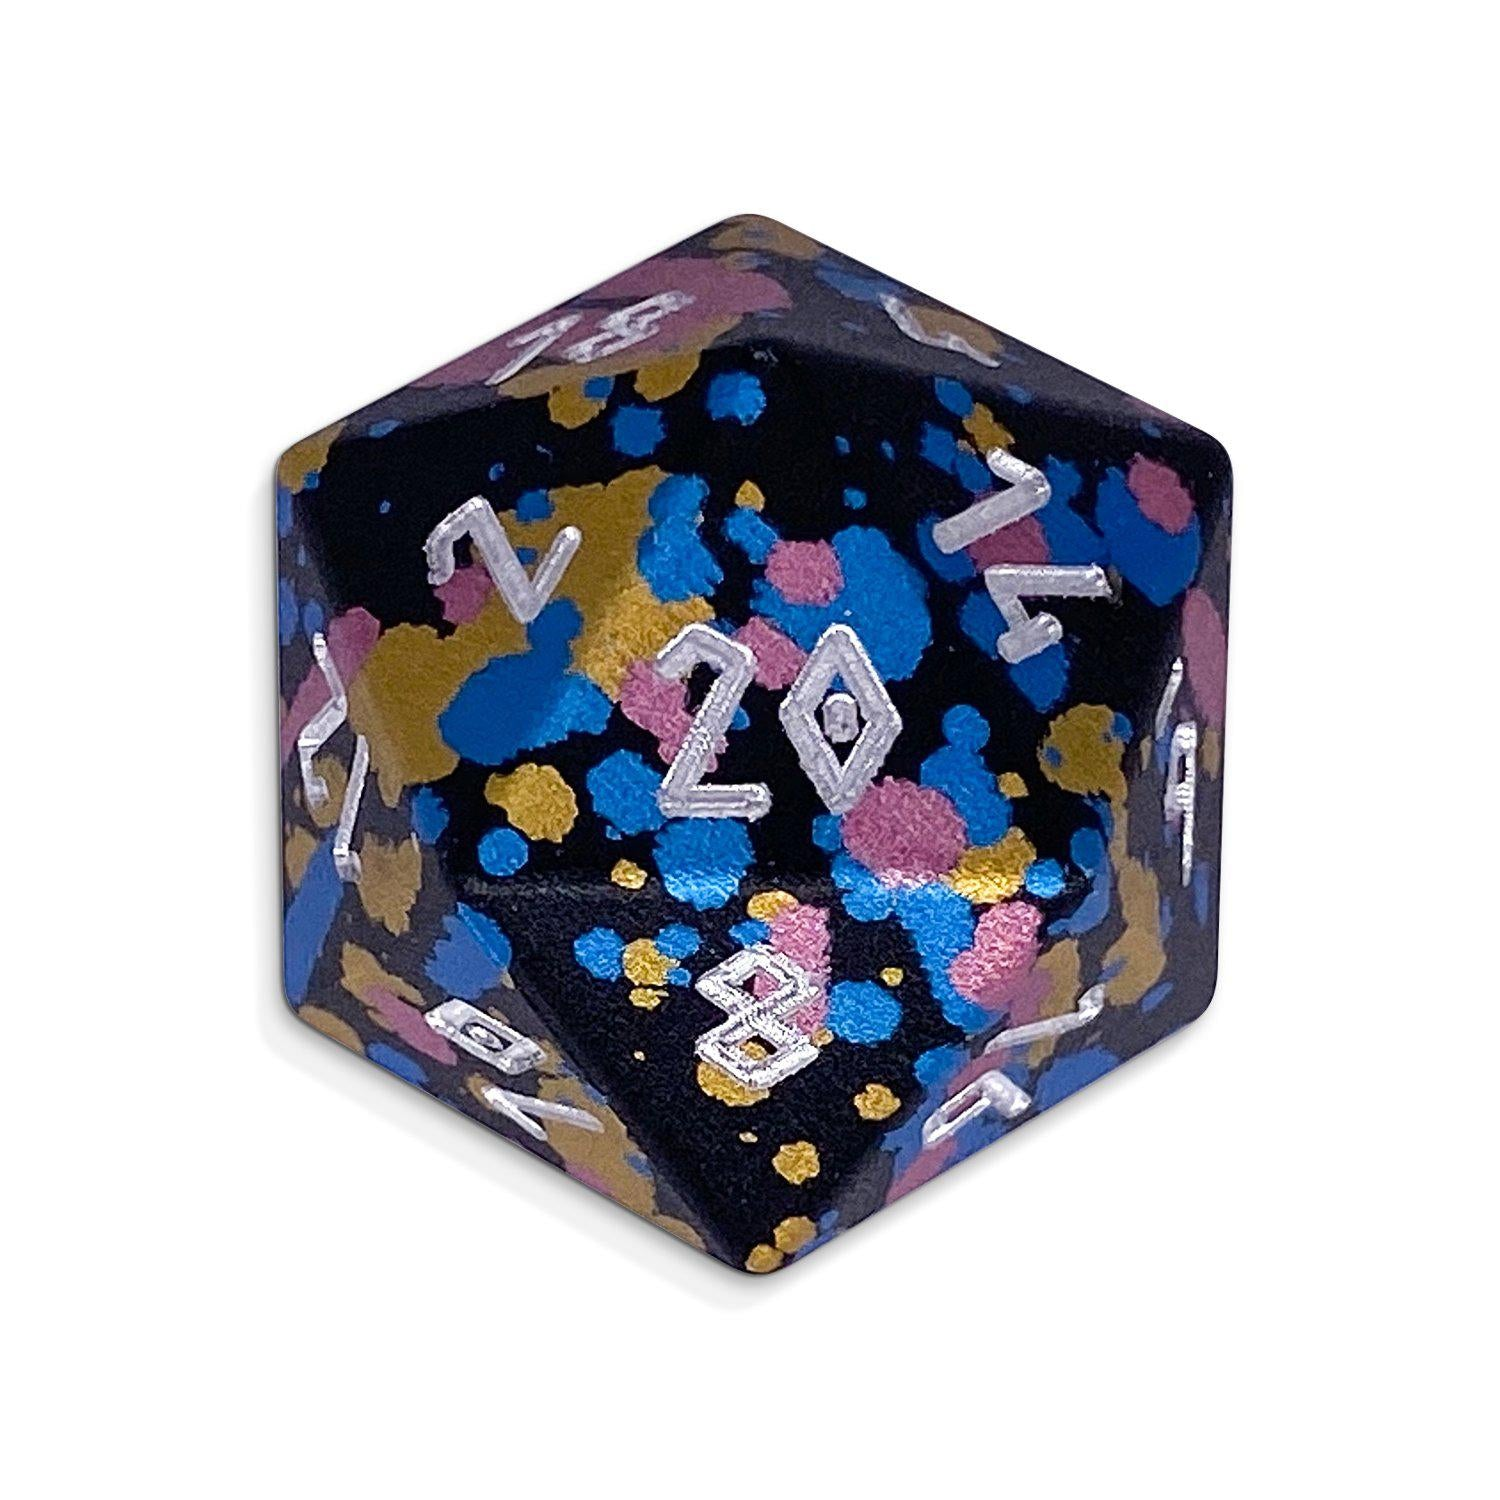 Single Wondrous Dice® D20 in That 70s Die by Norse Foundry 6063 Aircraft Grade Aluminum